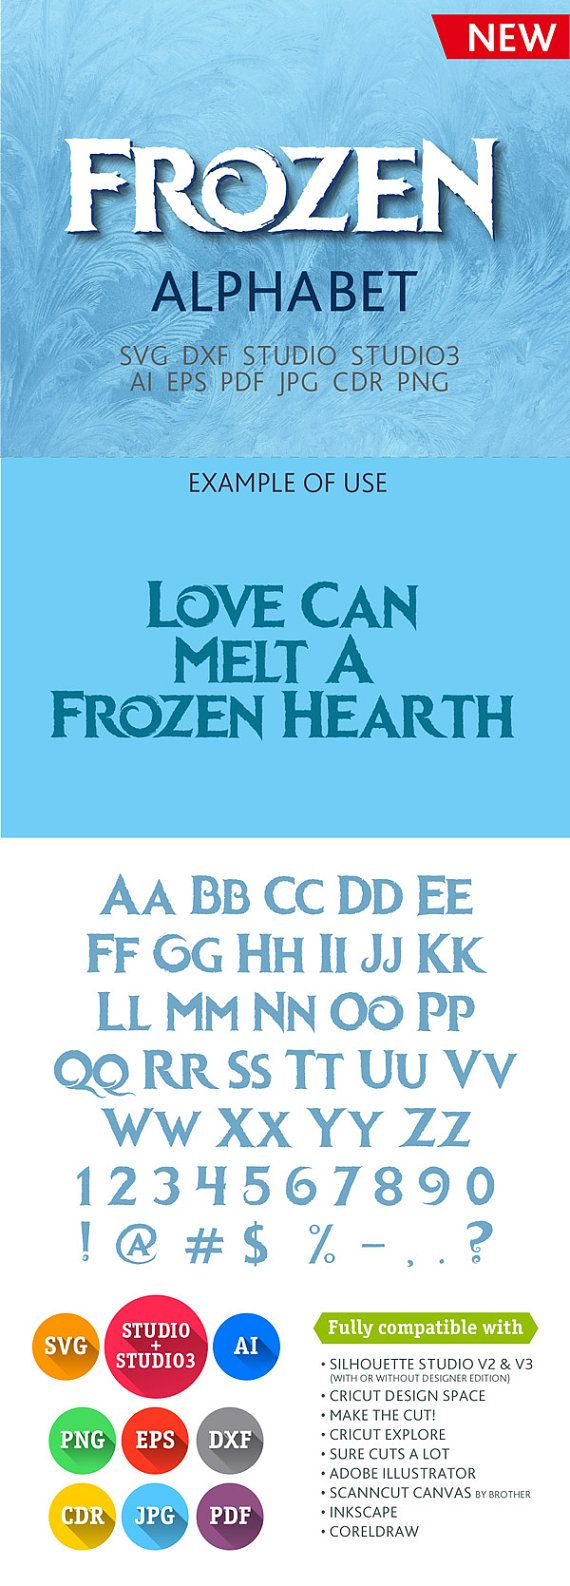 Frozen Font Alphabet Cuttable SVG DXF EPS Studio Studio3 Png Pdf Jpg Ai Cdr  files for Silhouette Studio, Cricut, Cameo